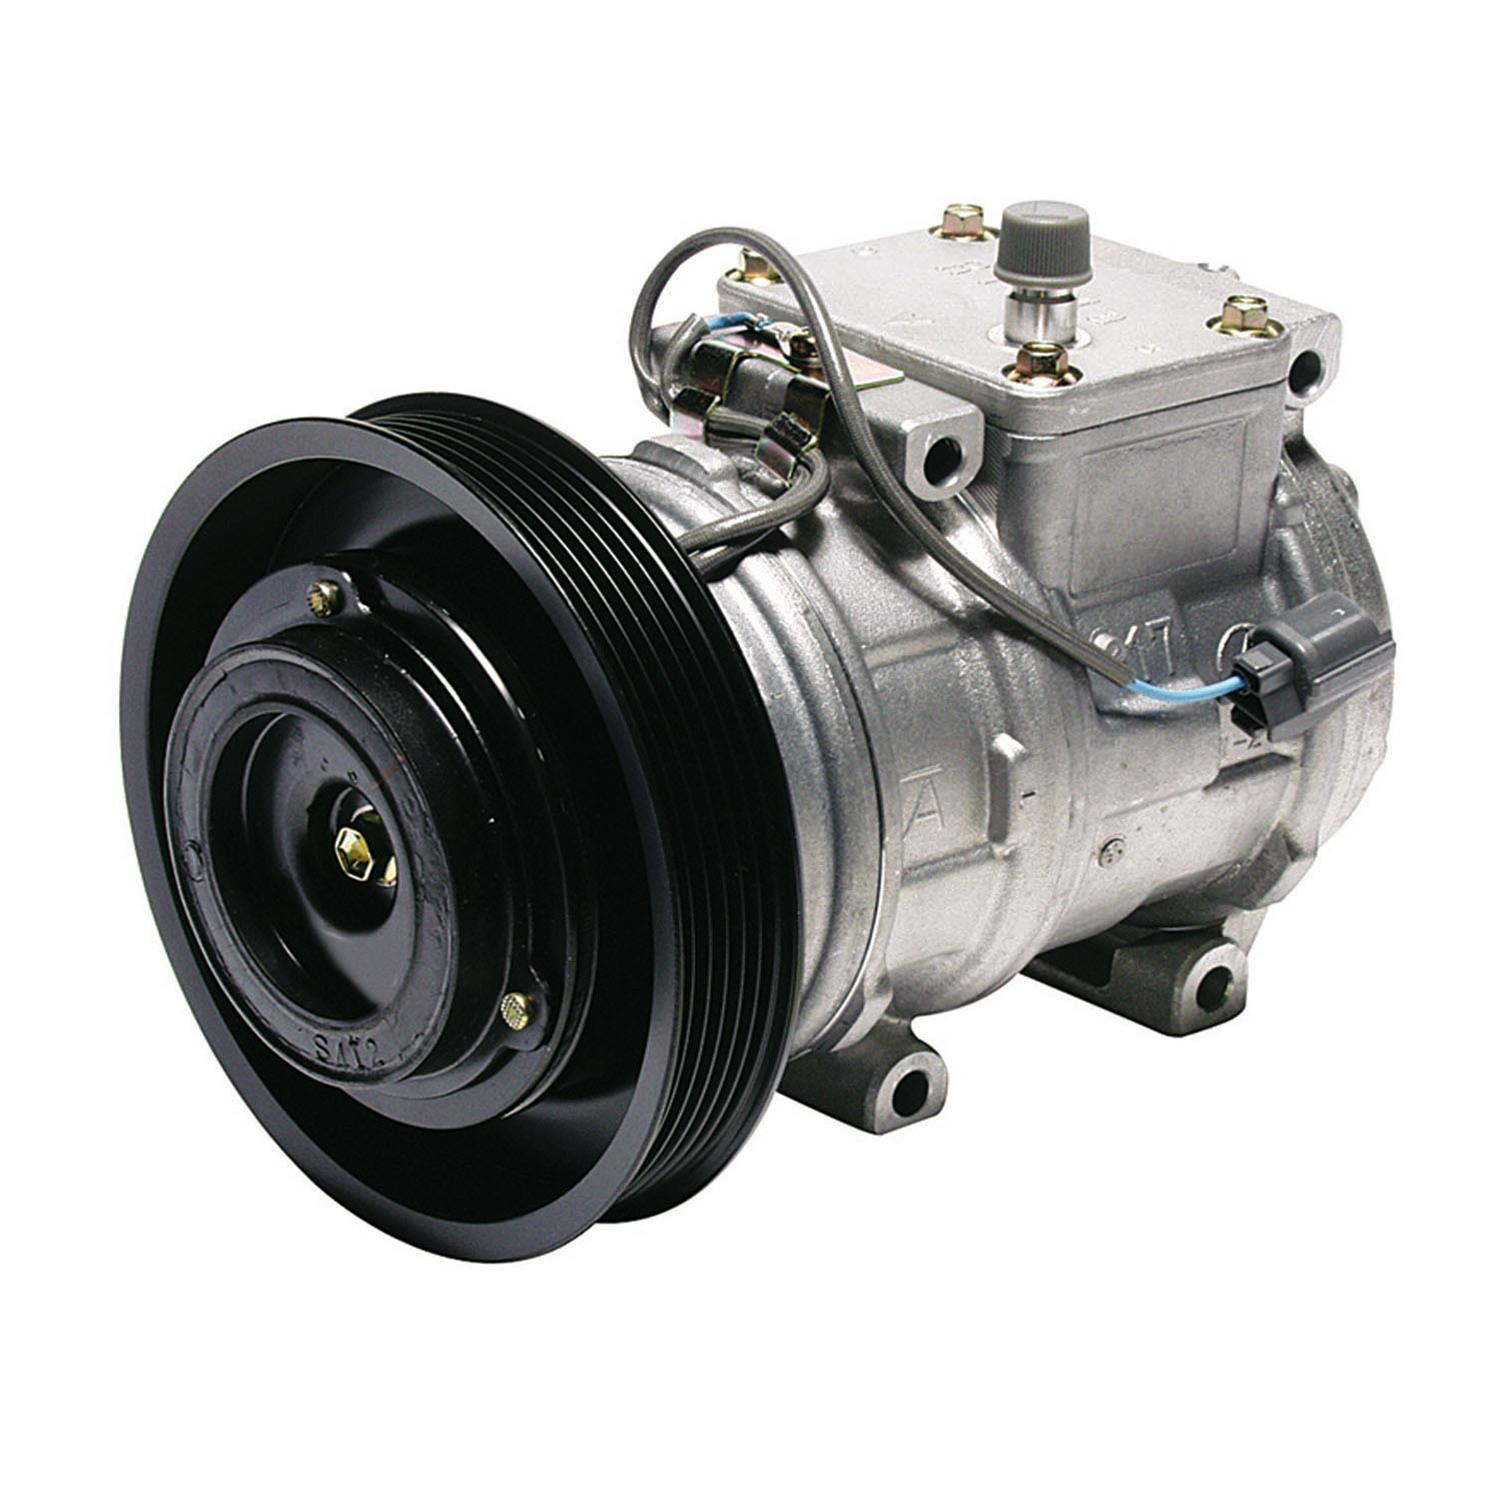 Denso 471-1189 New Compressor with Clutch Replacement Parts ...